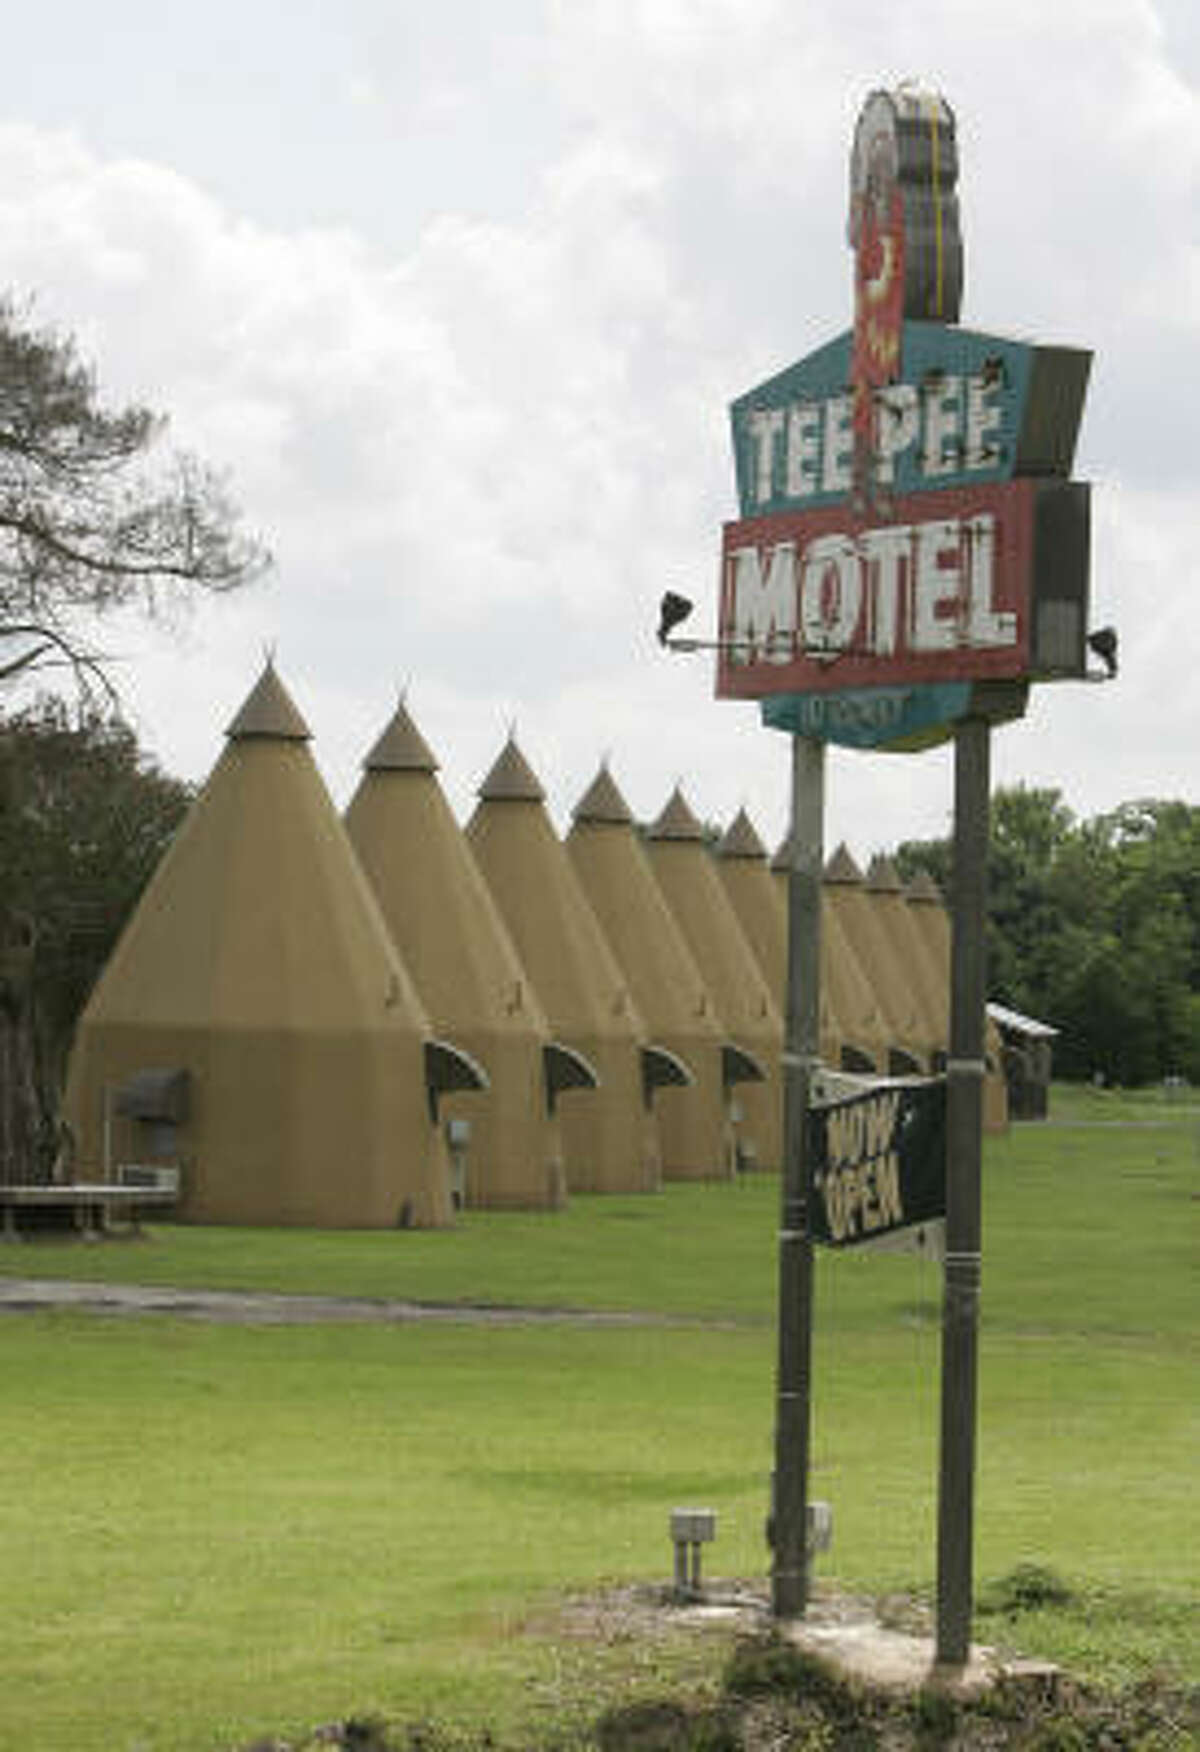 Wharton's Tee Pee Motel is one of only a handful of tepee-themed lodges still operating in the country.